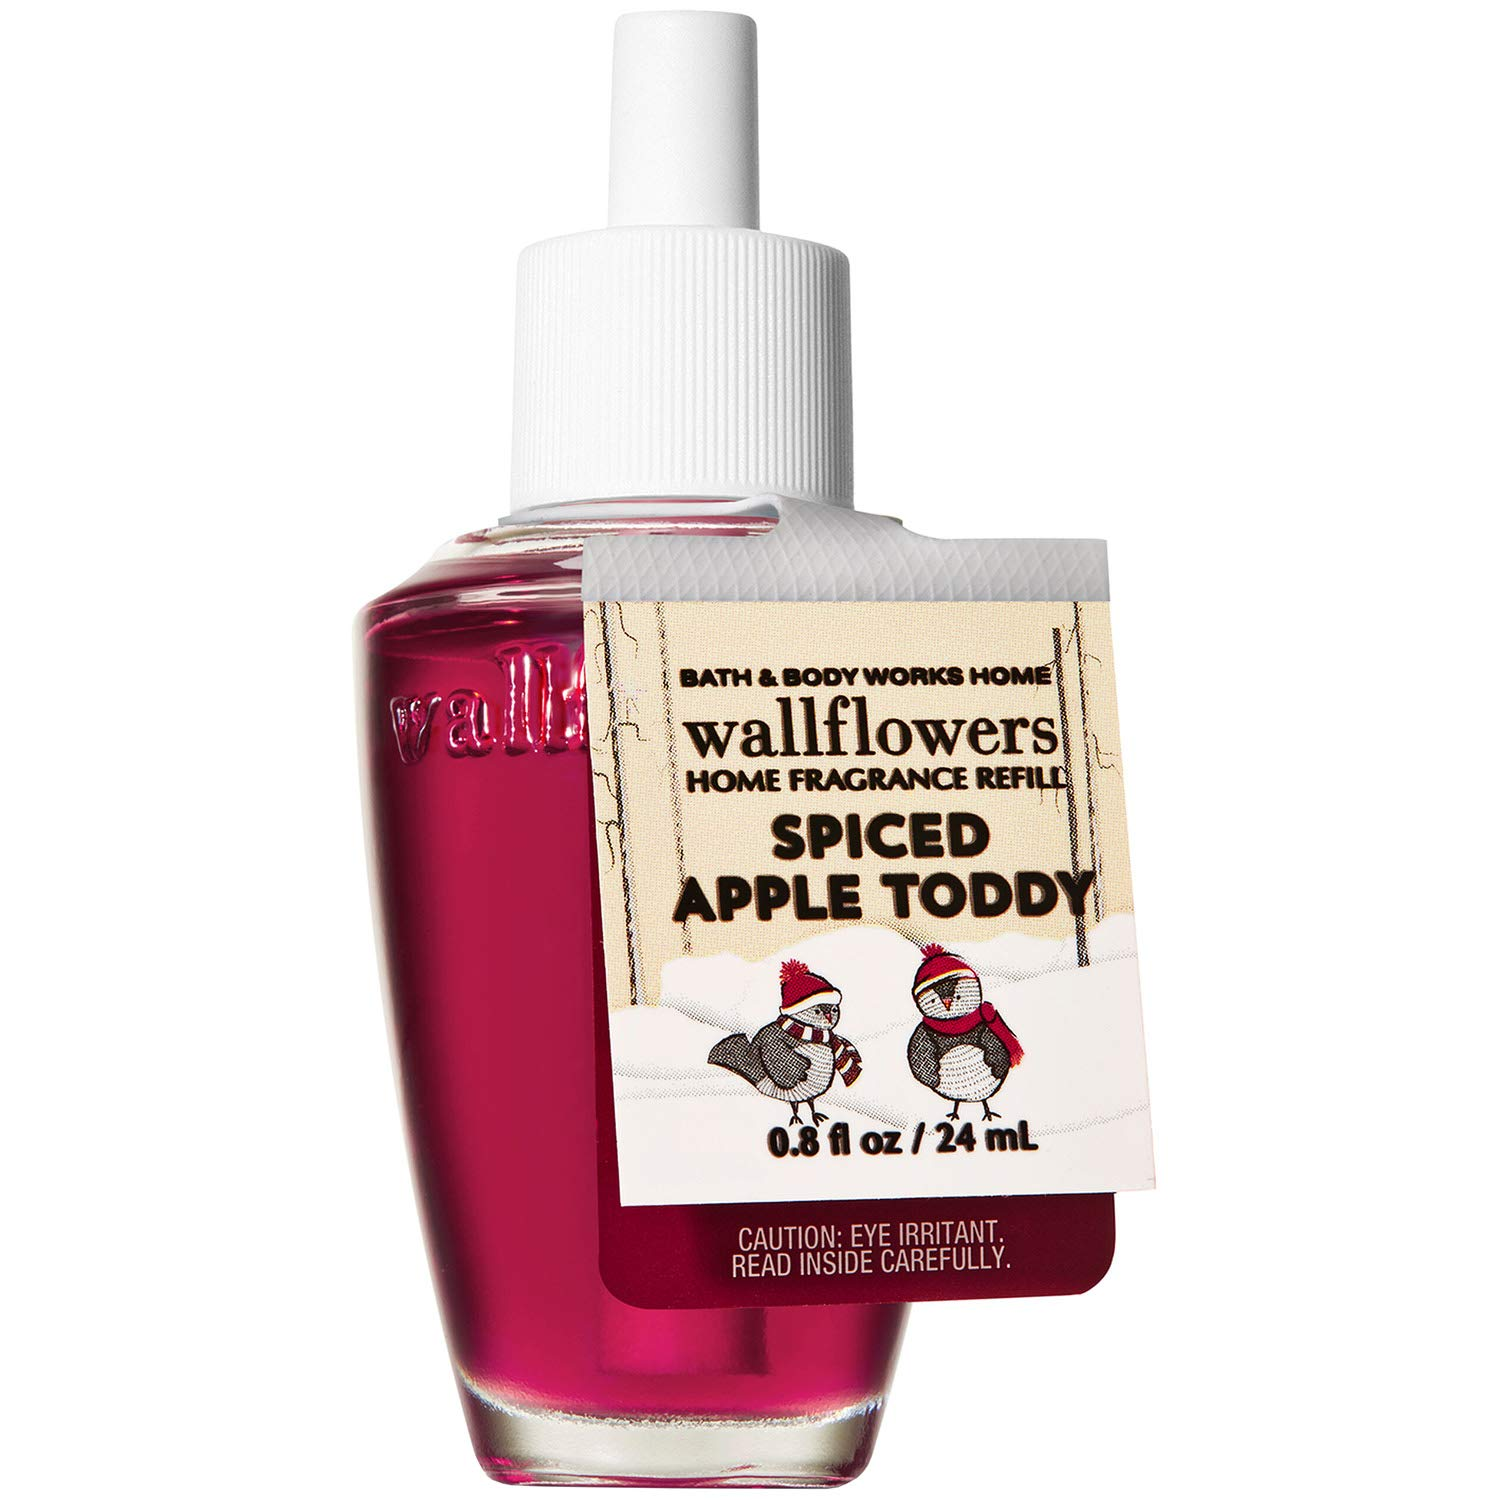 Bath and Body Works SPICED APPLE TODDY Wallflowers Fragrance Refill 0.8 Fluid Ounce (2019 Holiday Edition)